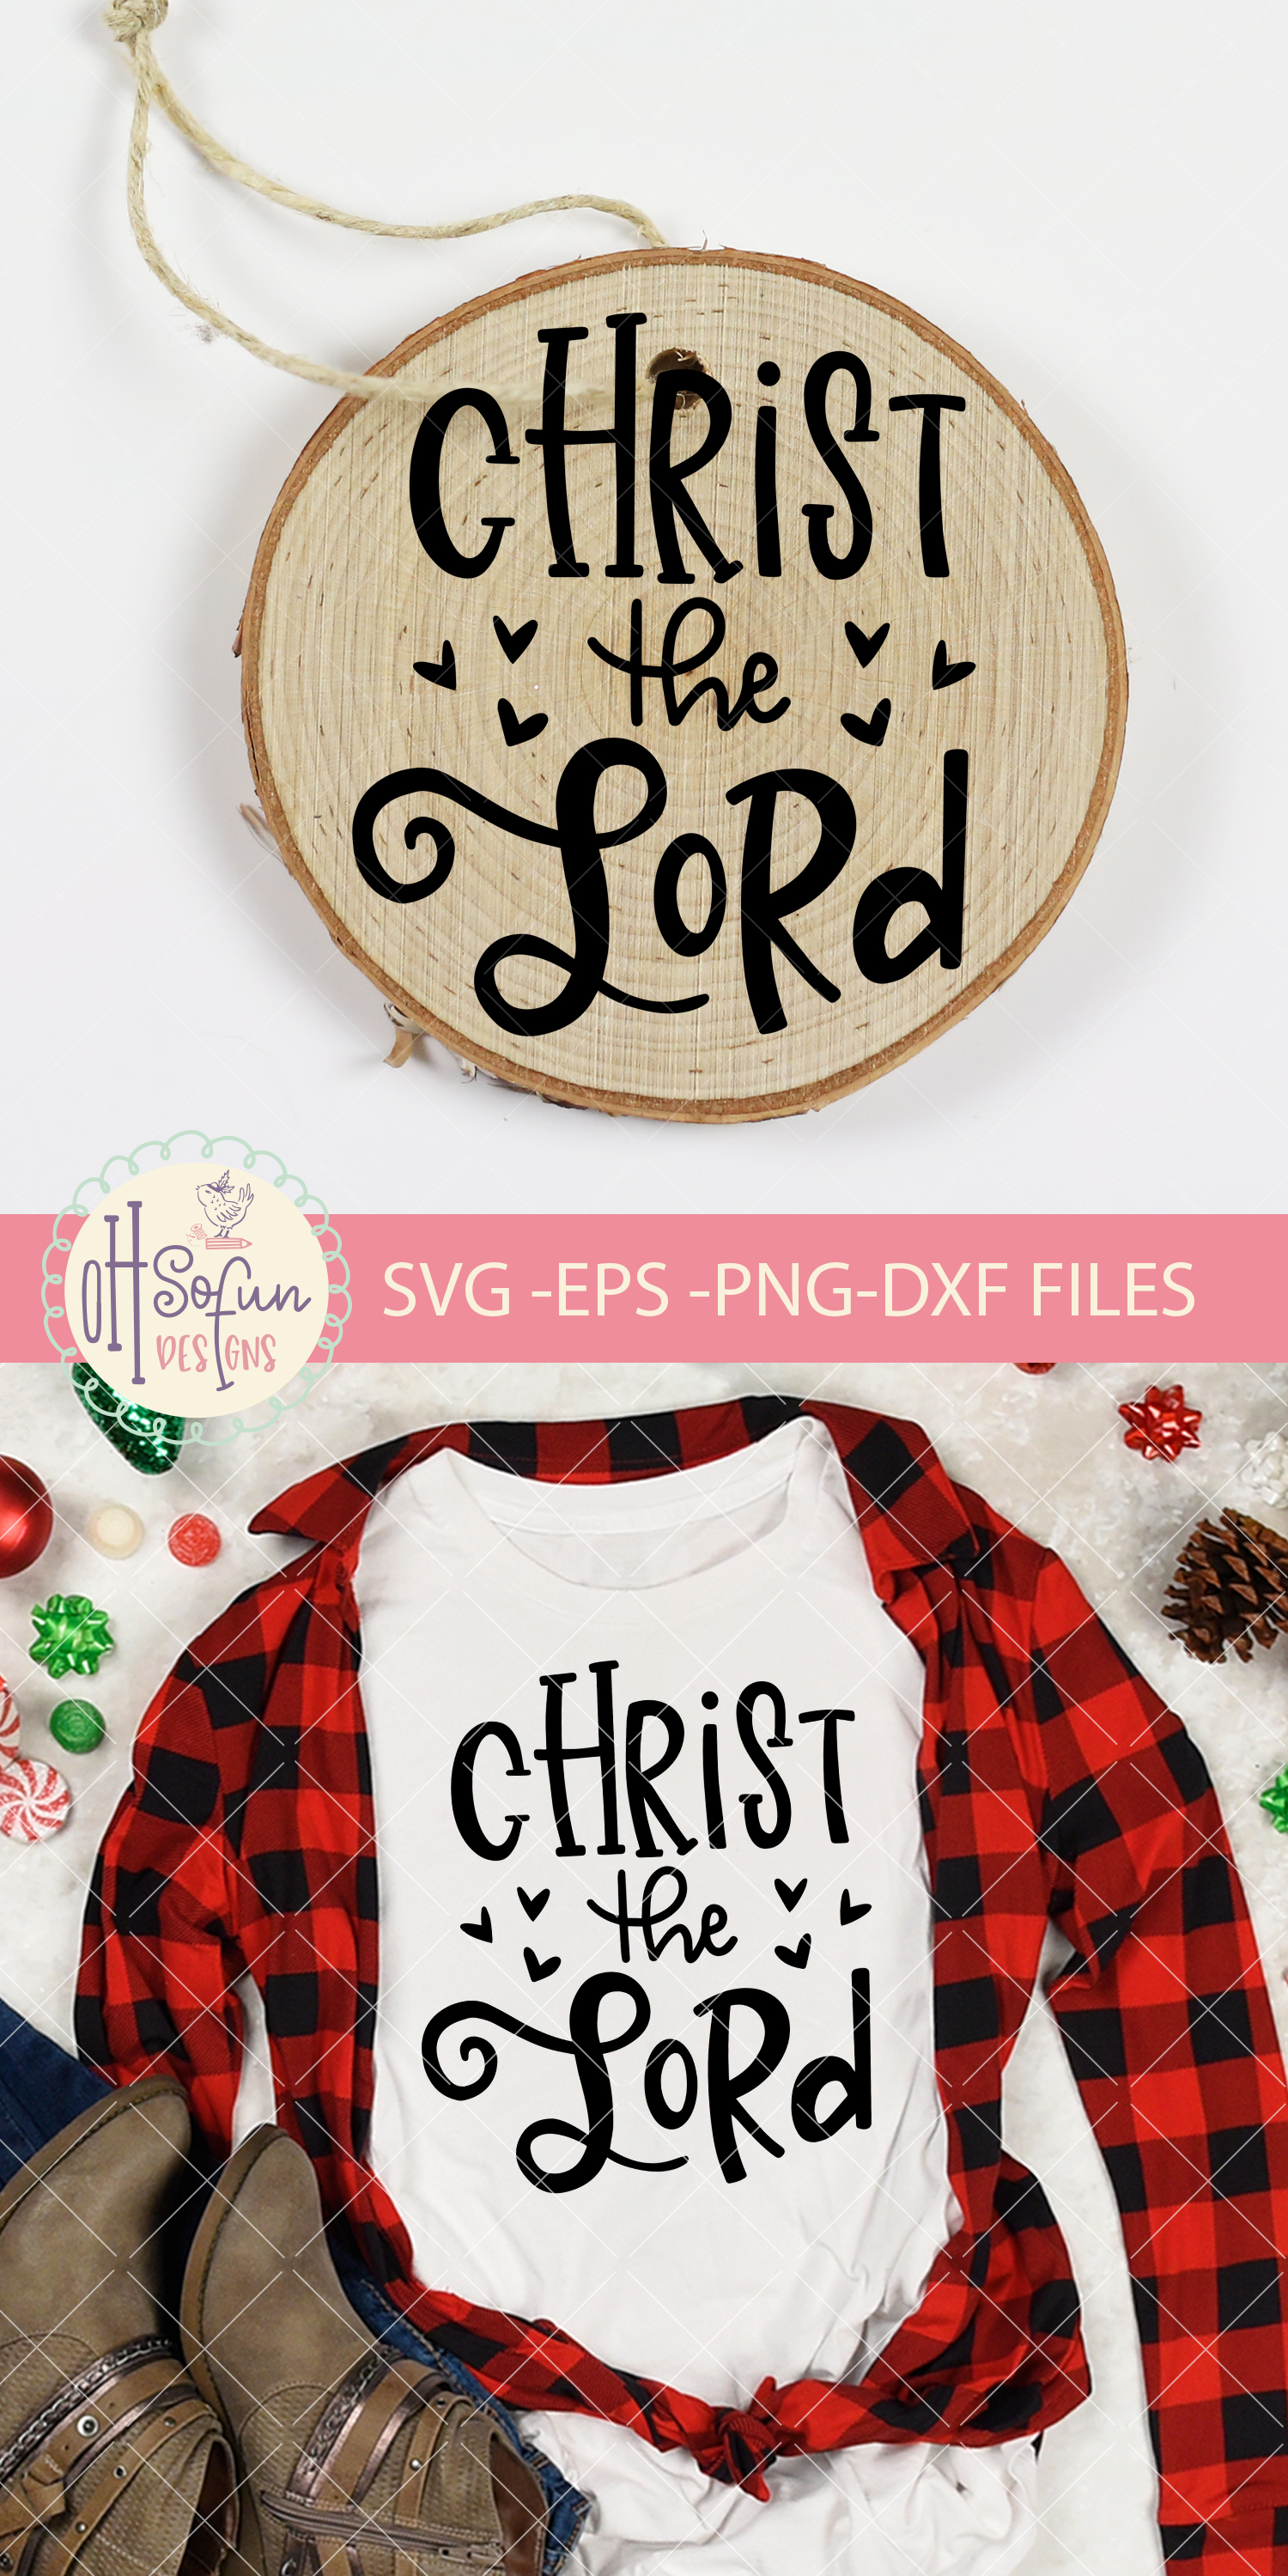 Christ the lord, hand lettering Christmas ornament SVG example image 2